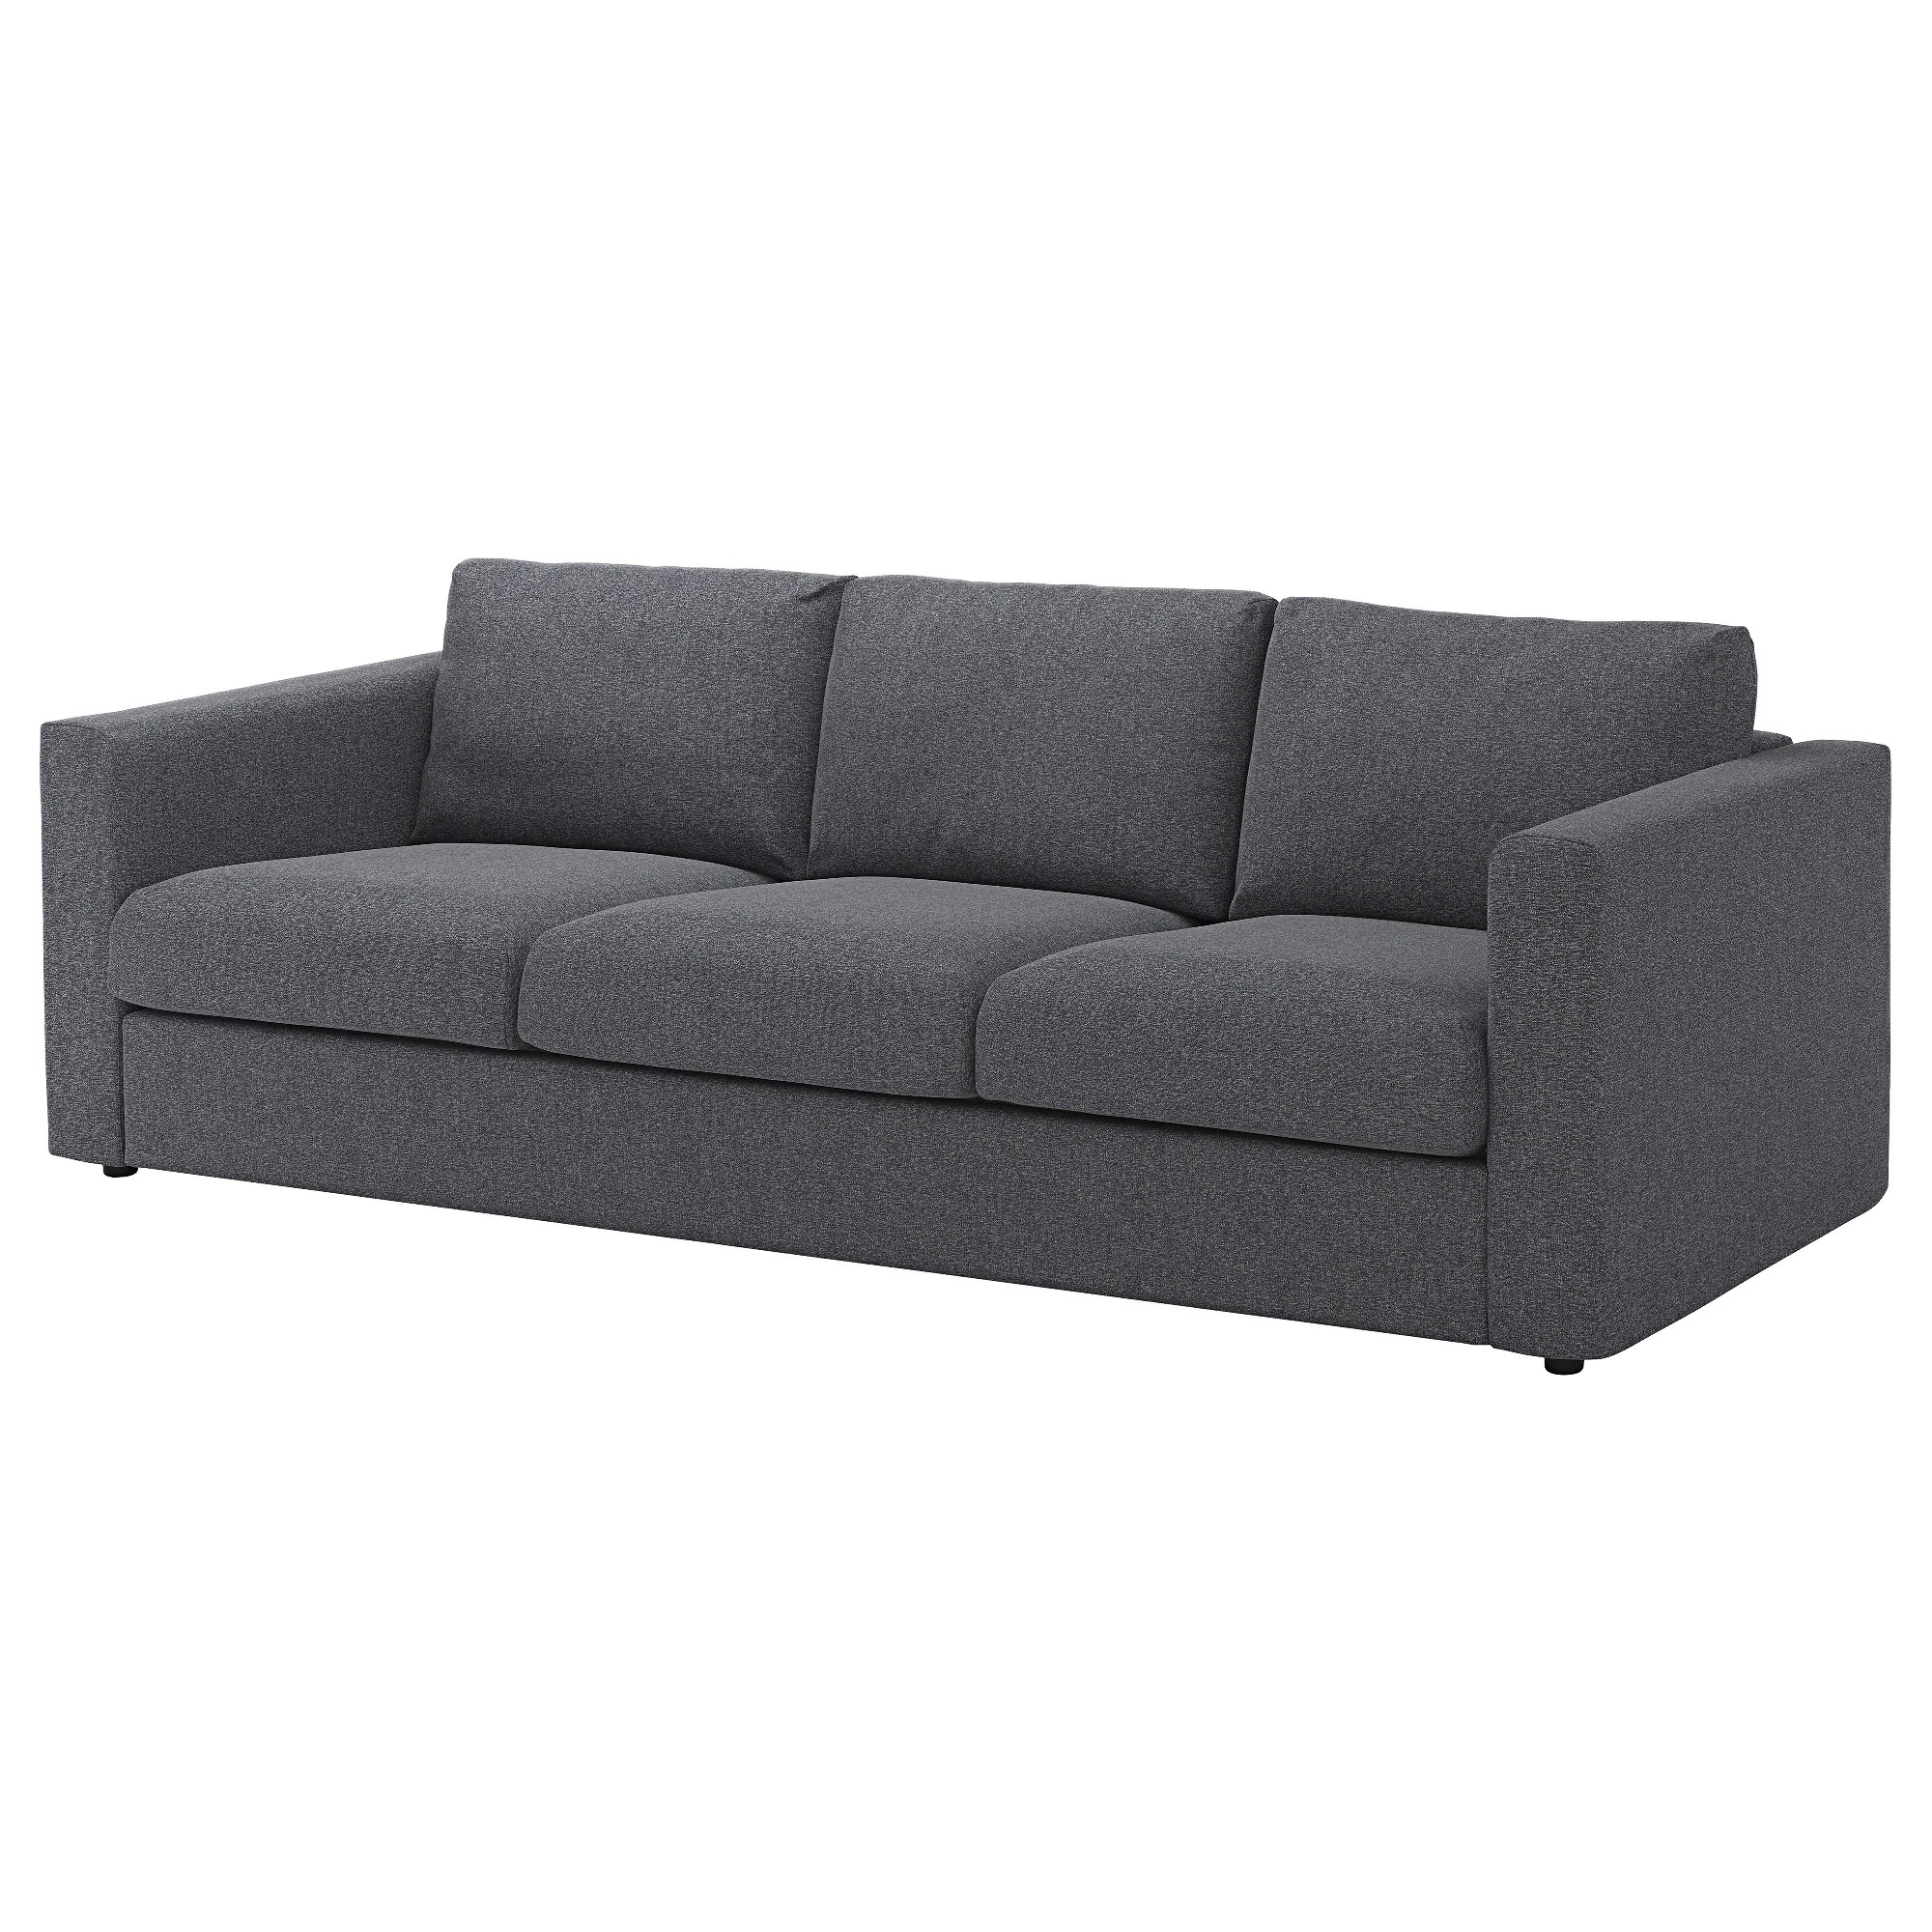 Made Sofa Reviews Sofa Vimle Gunnared Medium Gray